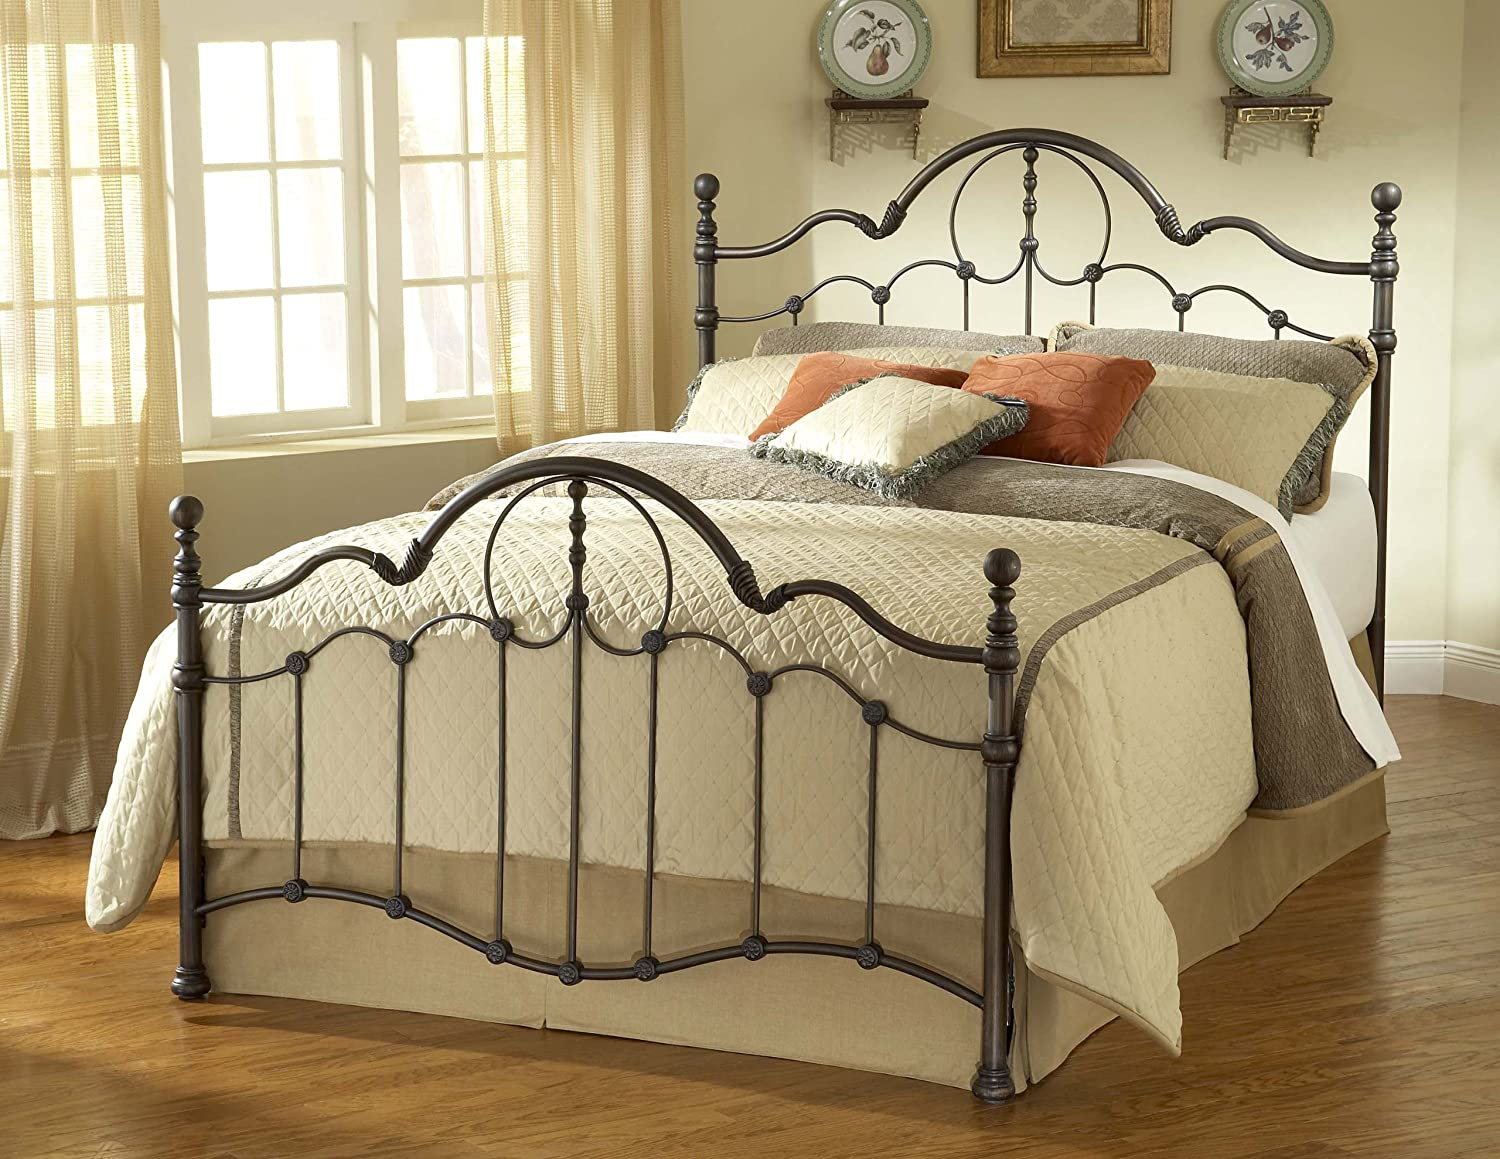 Amazon.com: Hillsdale Furniture 1480BQR Venetian Bed Set with ...